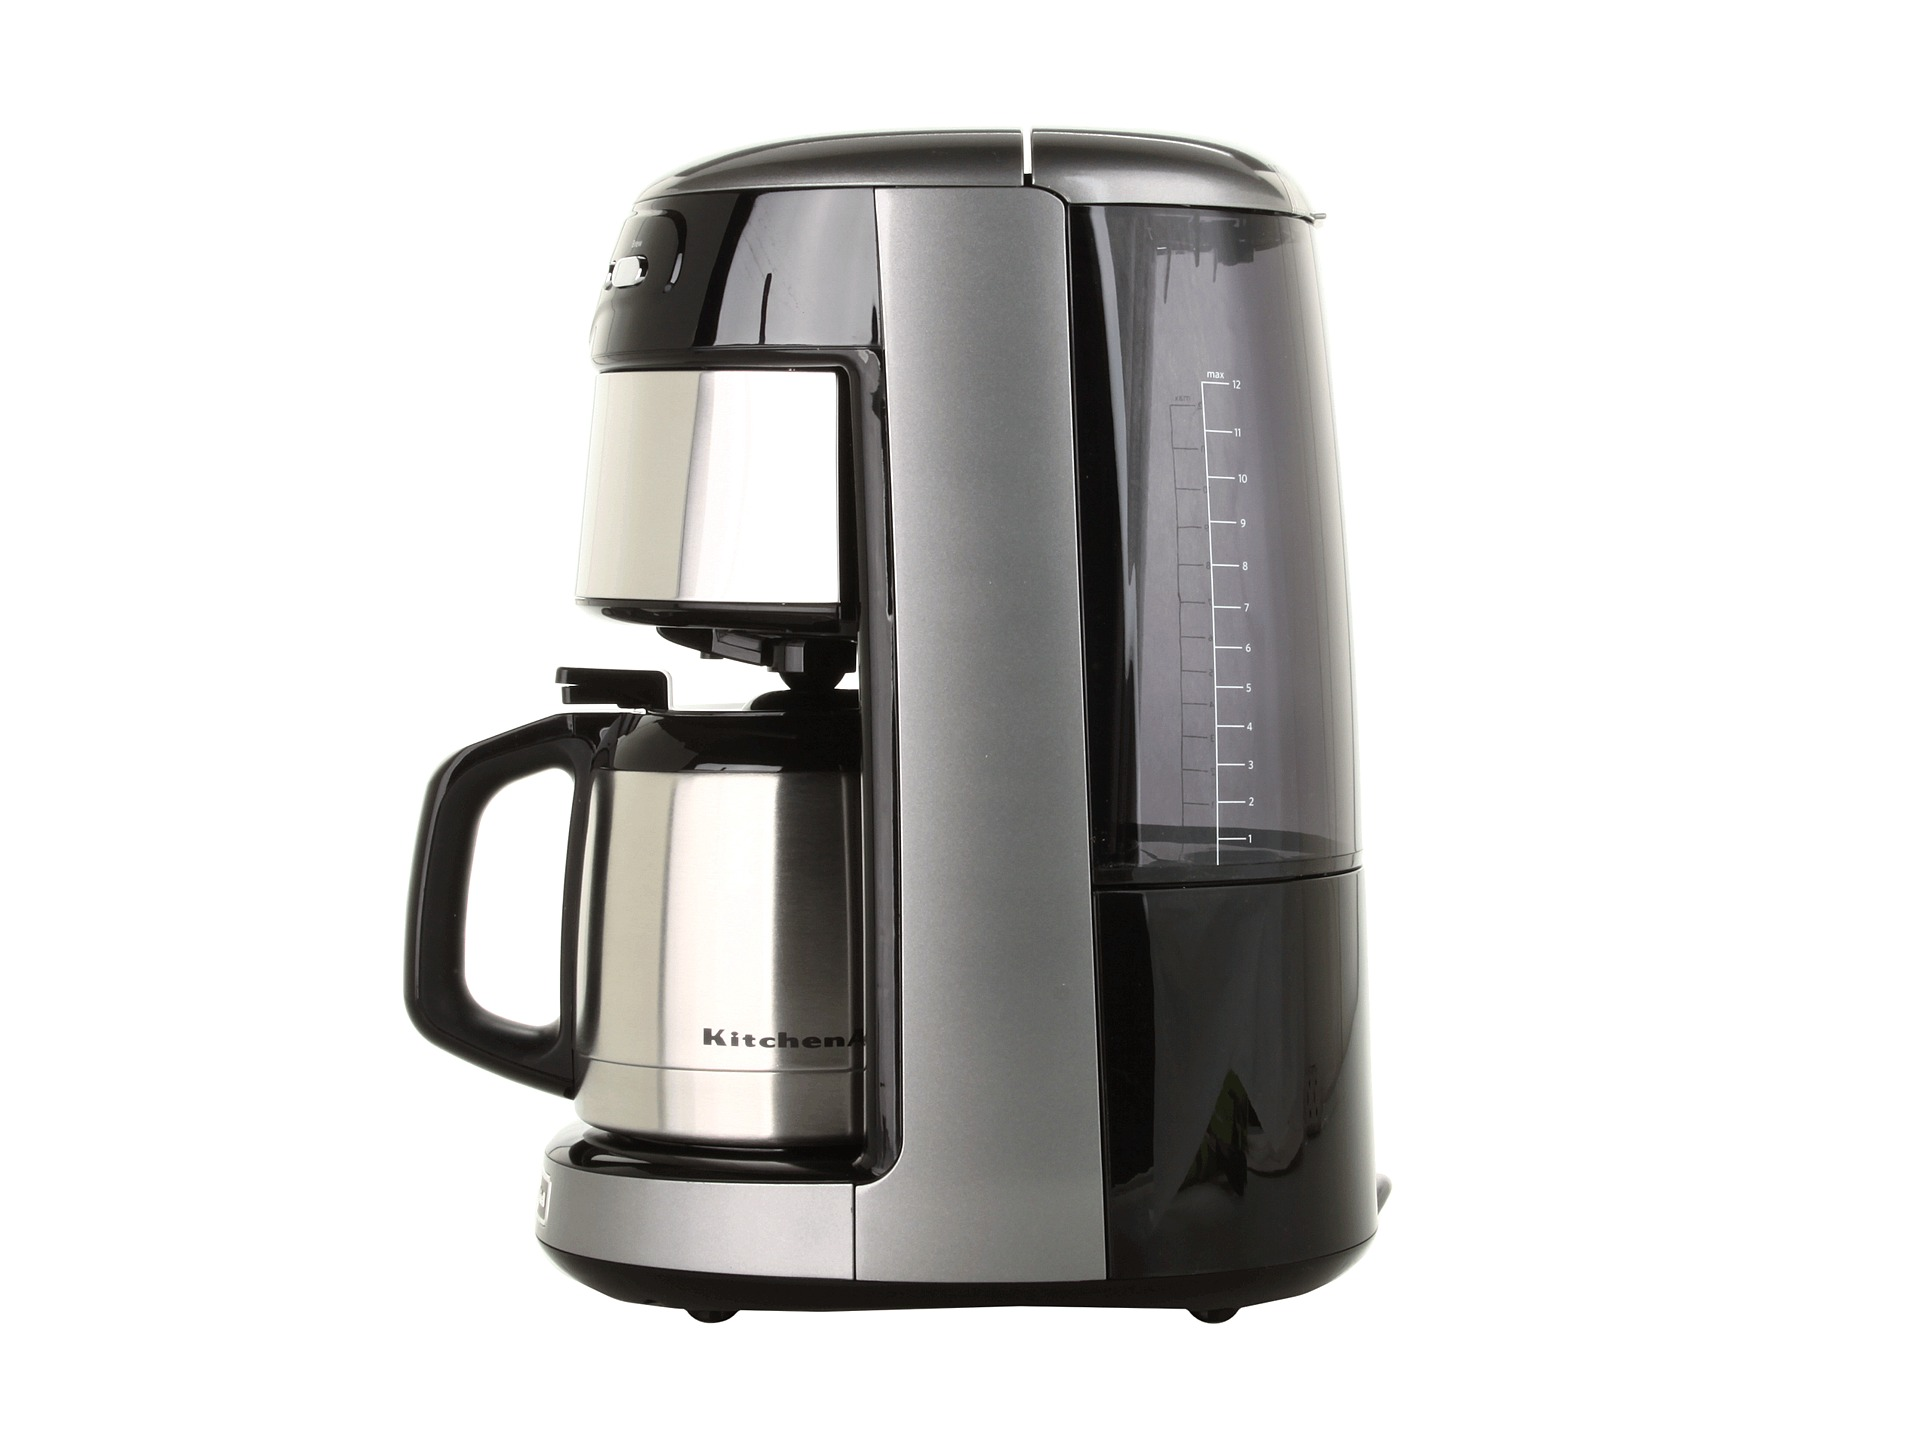 Kitchenaid Coffee Maker 12 Cup Thermal : Kitchenaid 12 Cup Thermal Coffee Maker Shipped Free at Zappos